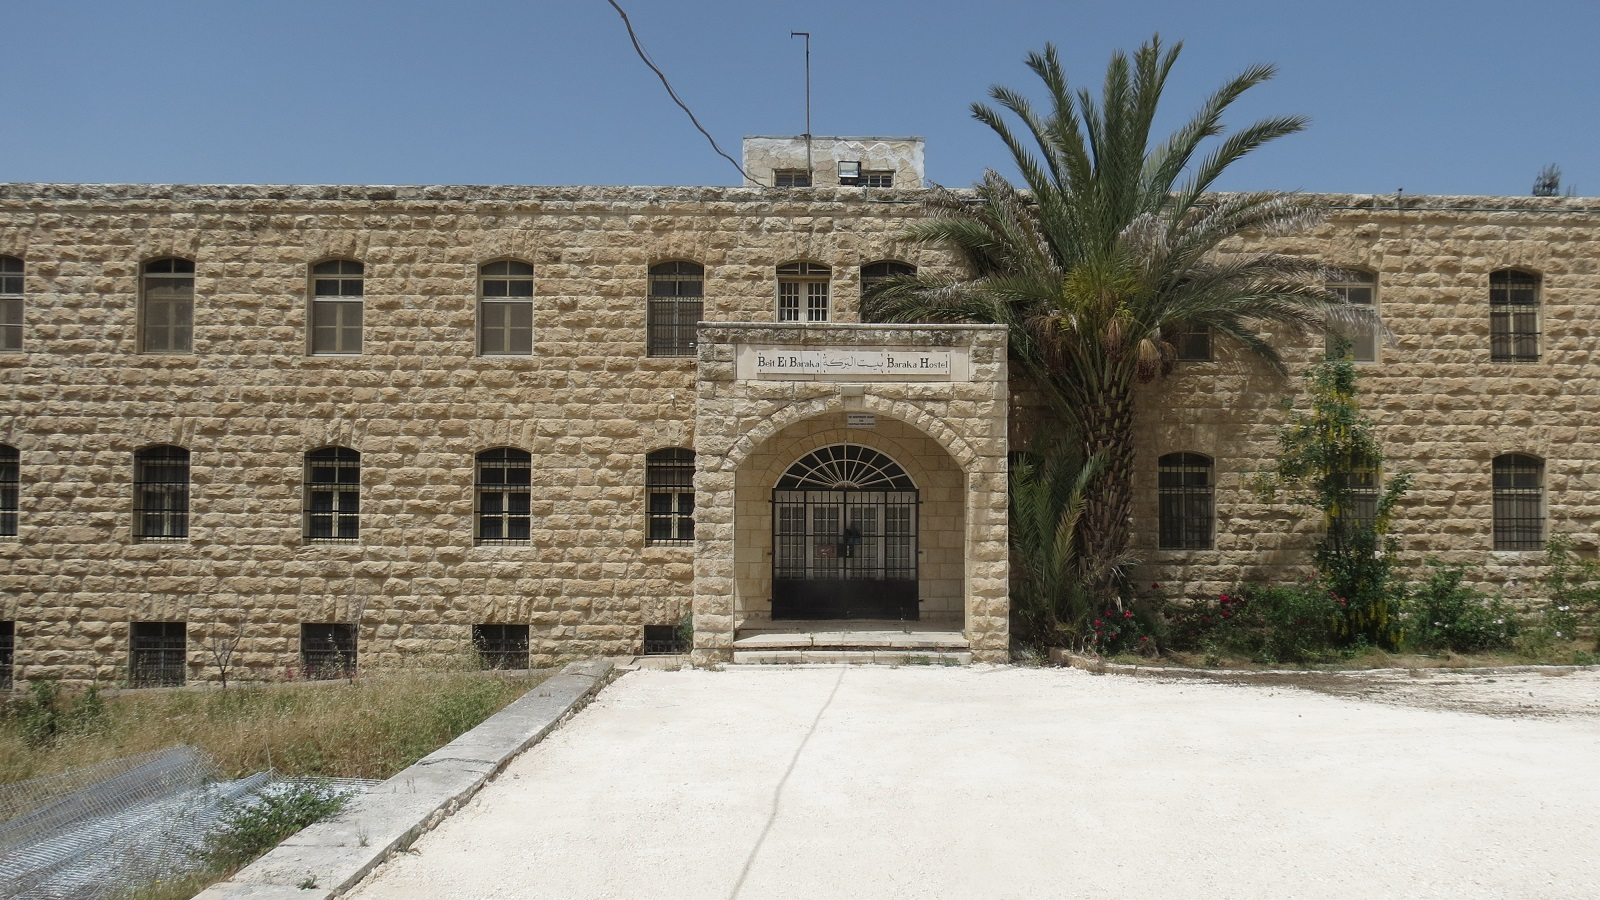 Part of the old hospital that the settlers bought near El-Aroub refugee camp